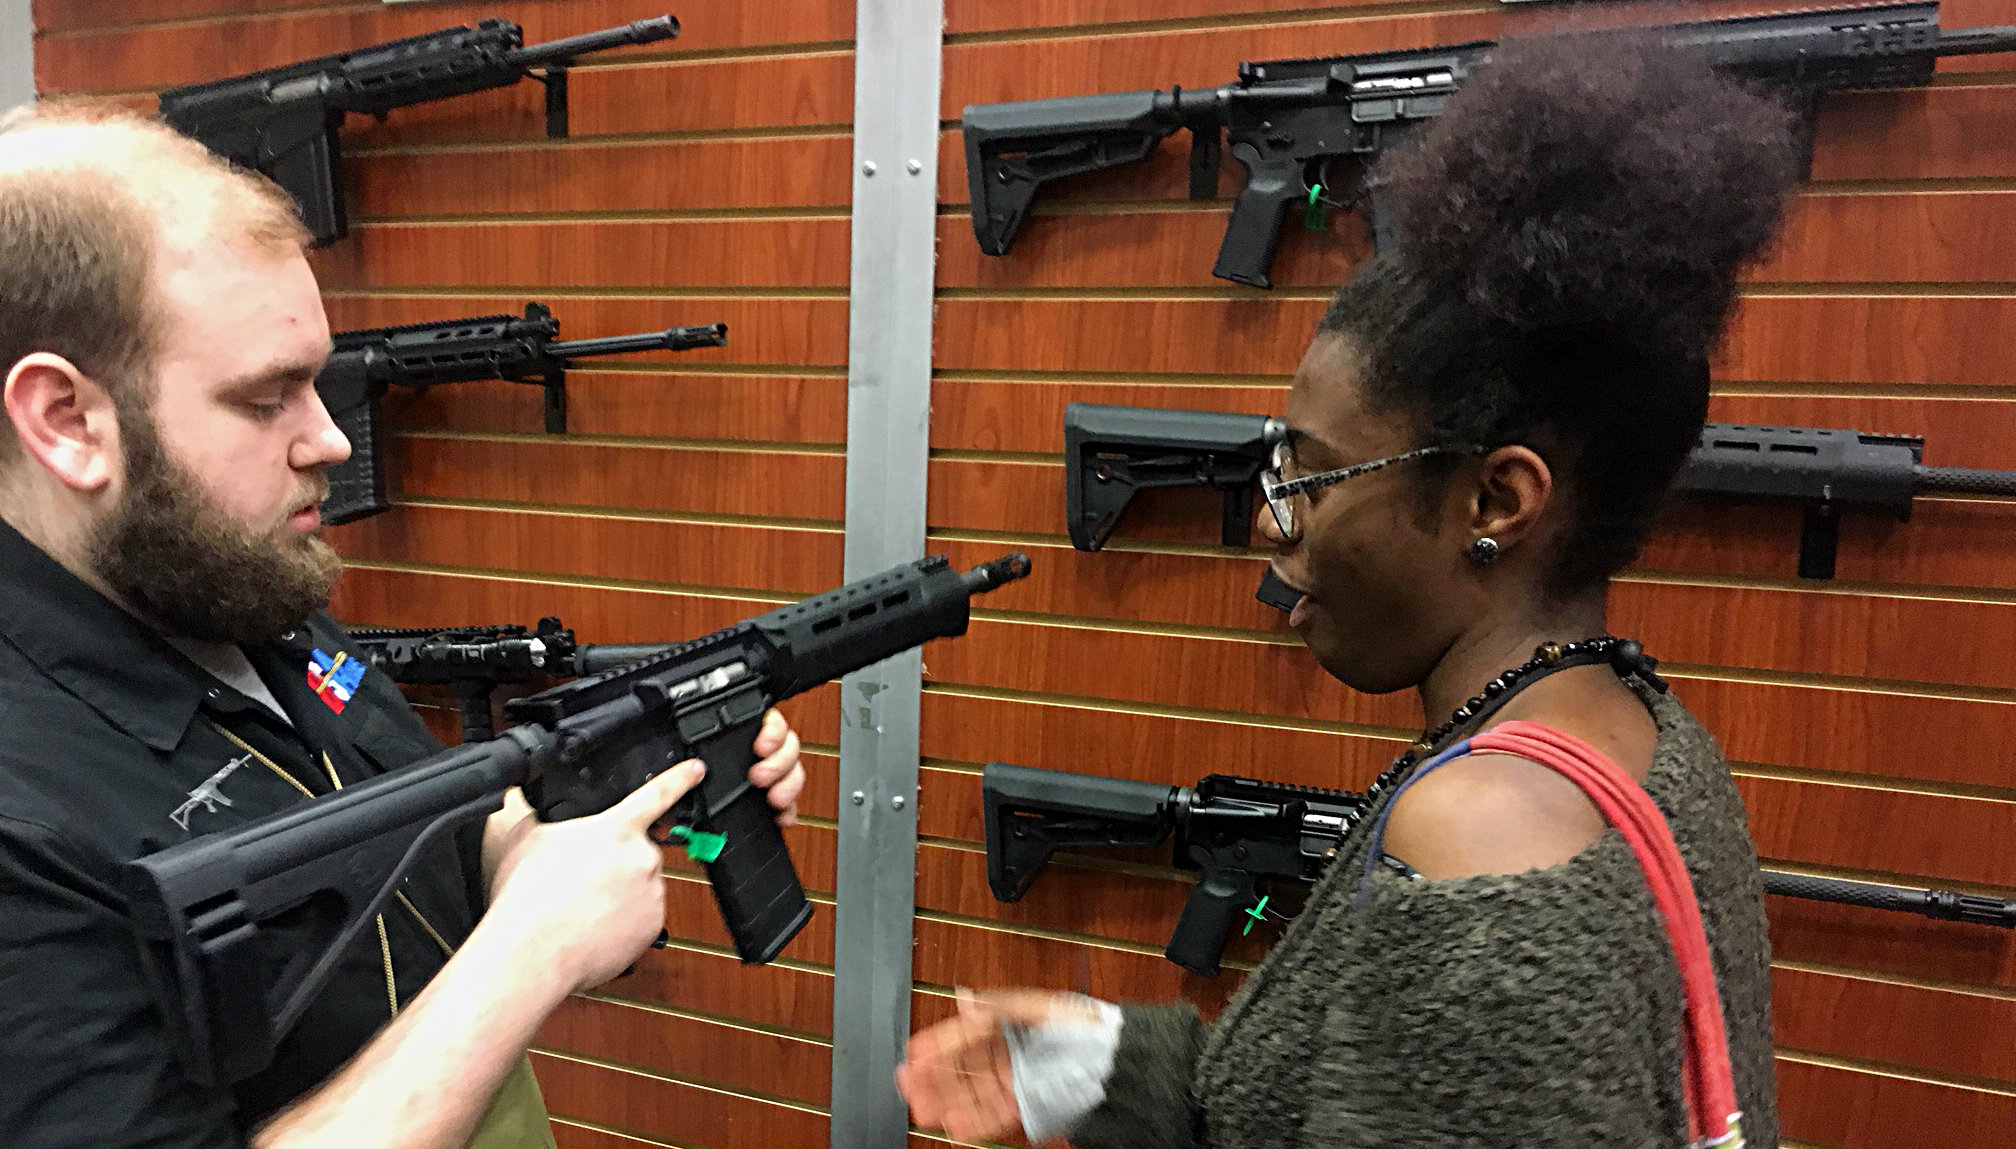 Trinity Gordon and the AR-15